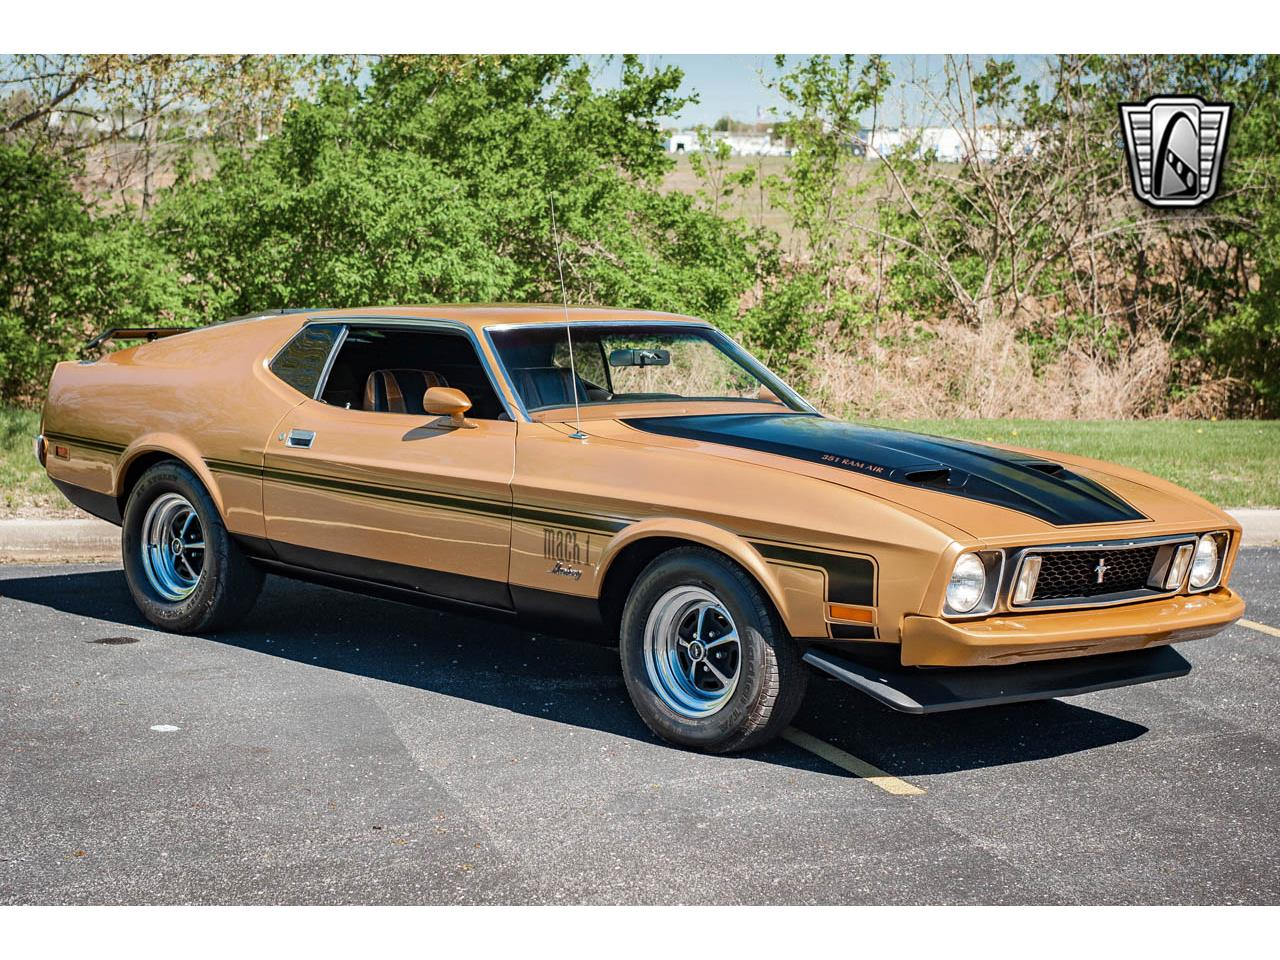 Large Picture of Classic 1973 Mustang located in Illinois - $34,500.00 Offered by Gateway Classic Cars - St. Louis - QB8T